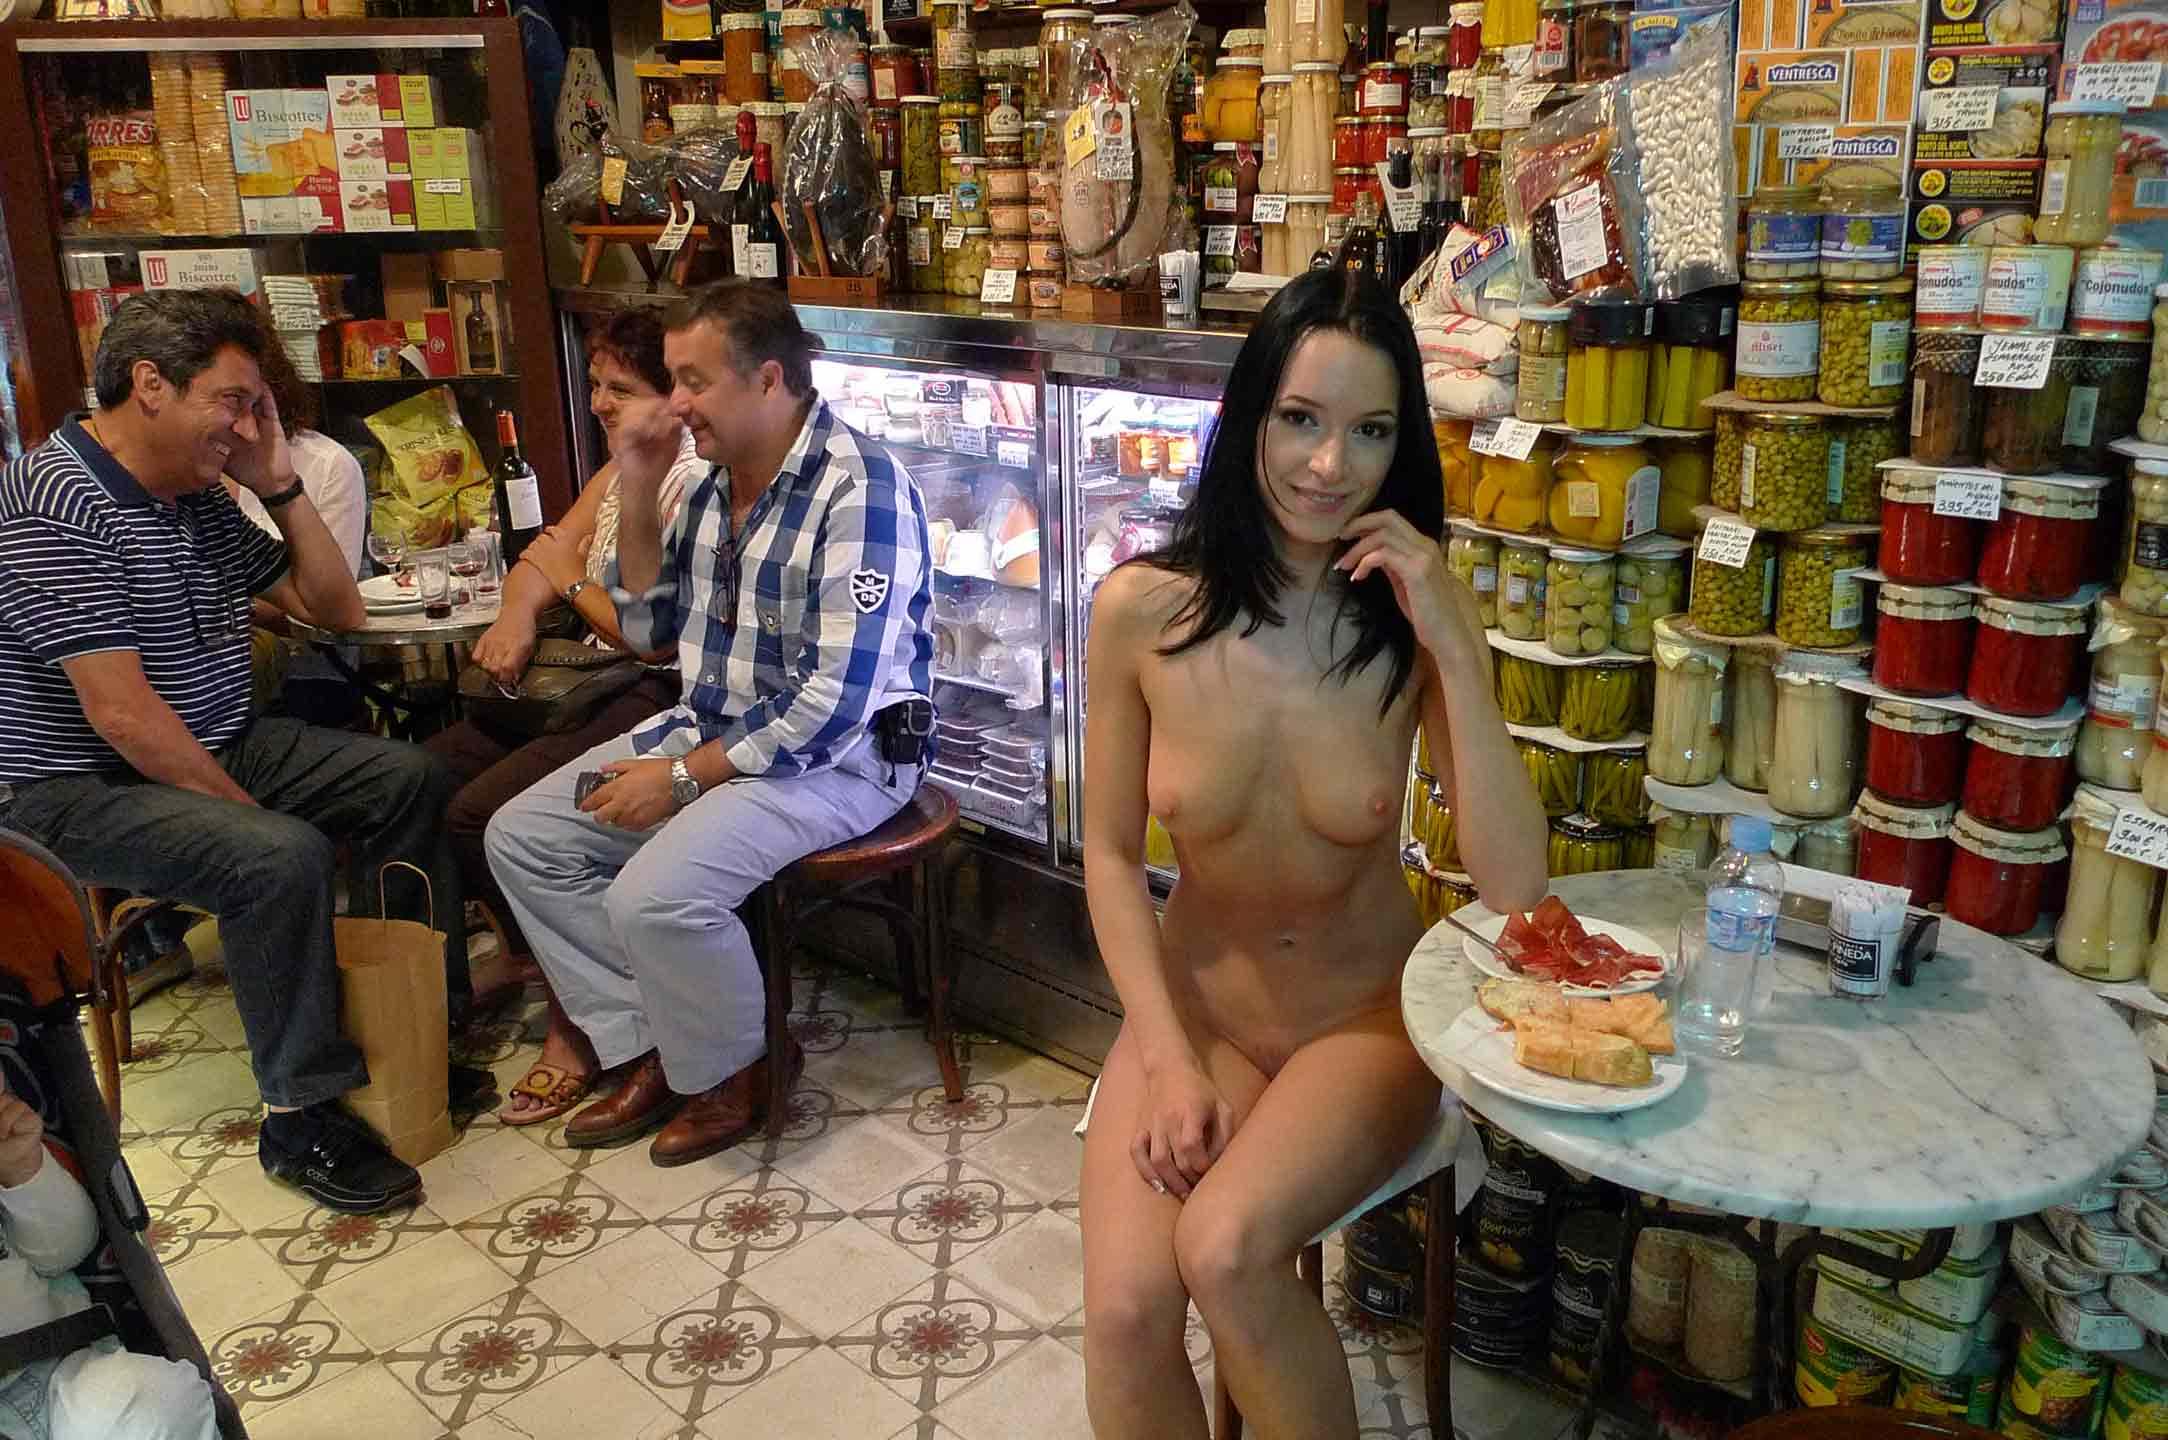 Images of naked girls - Gwen eating in a cafe